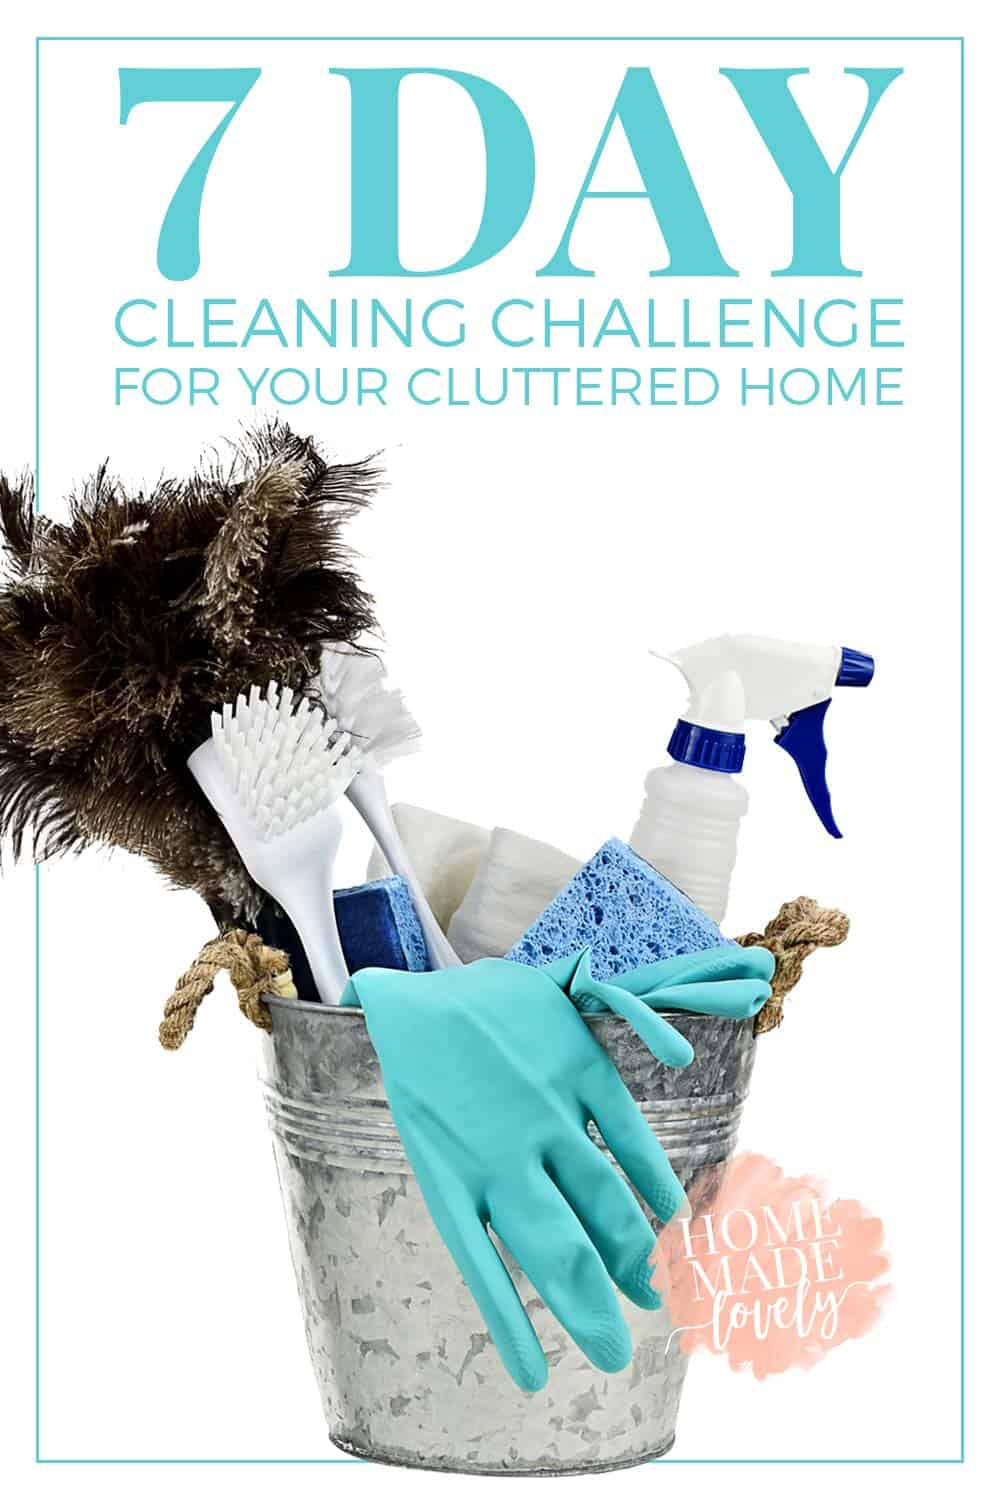 7 Day Cleaning Challenge for your Cluttered Home